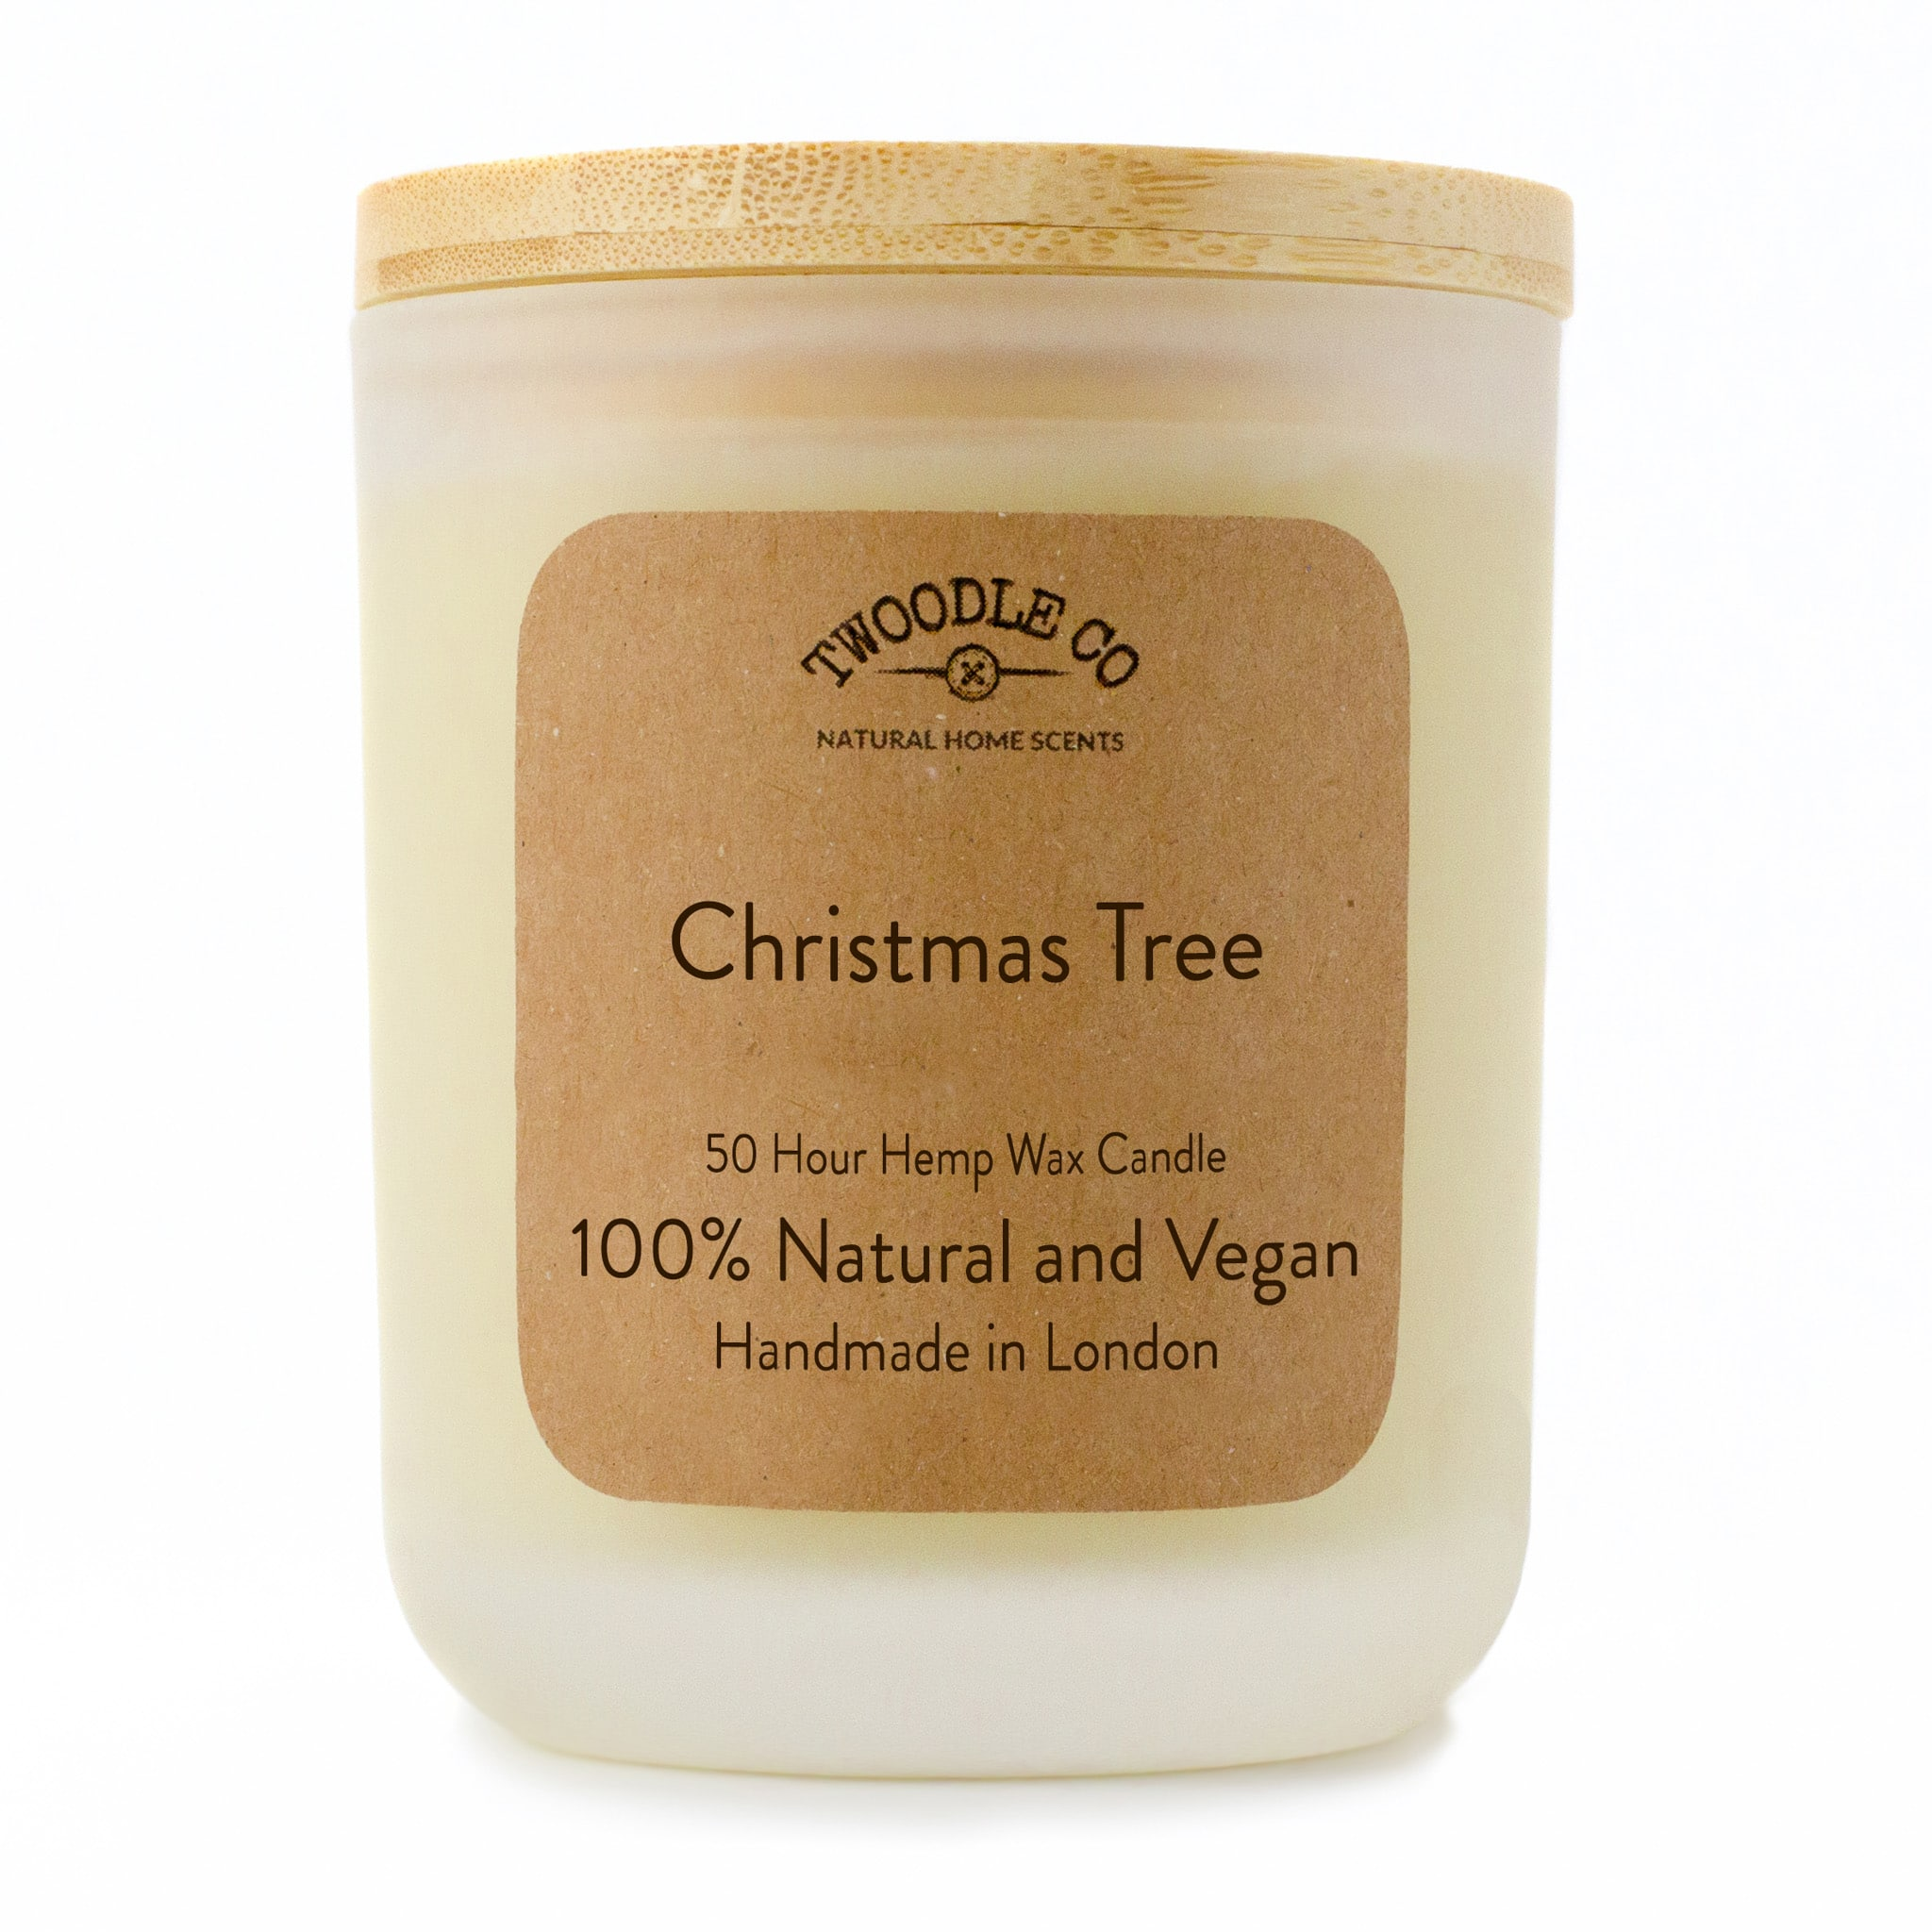 Christmas Tree Medium Scented Candle 50 Hour